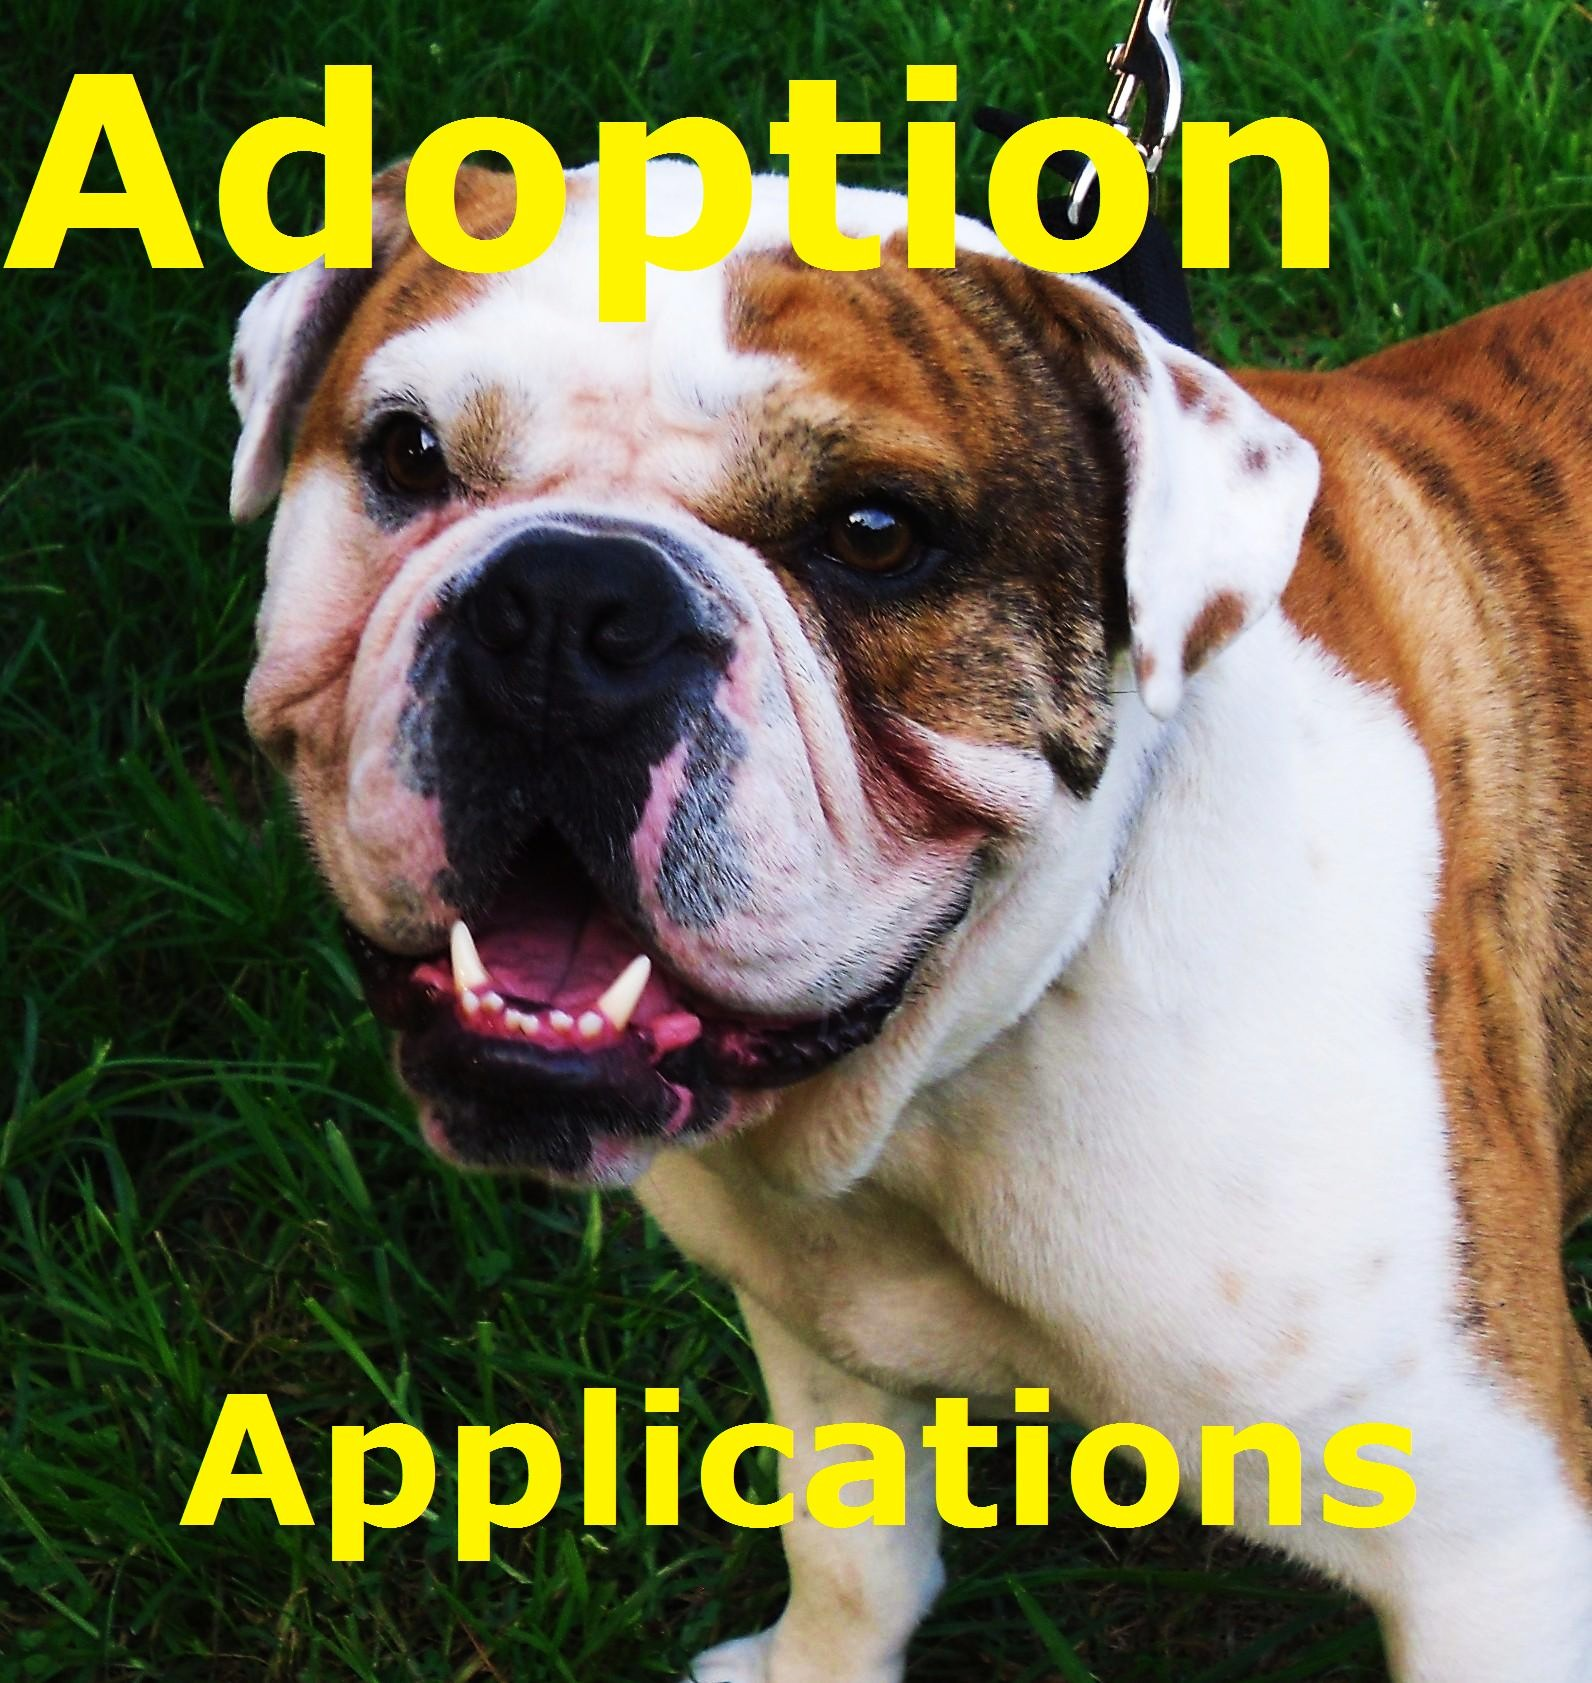 Adoption Applications Poster